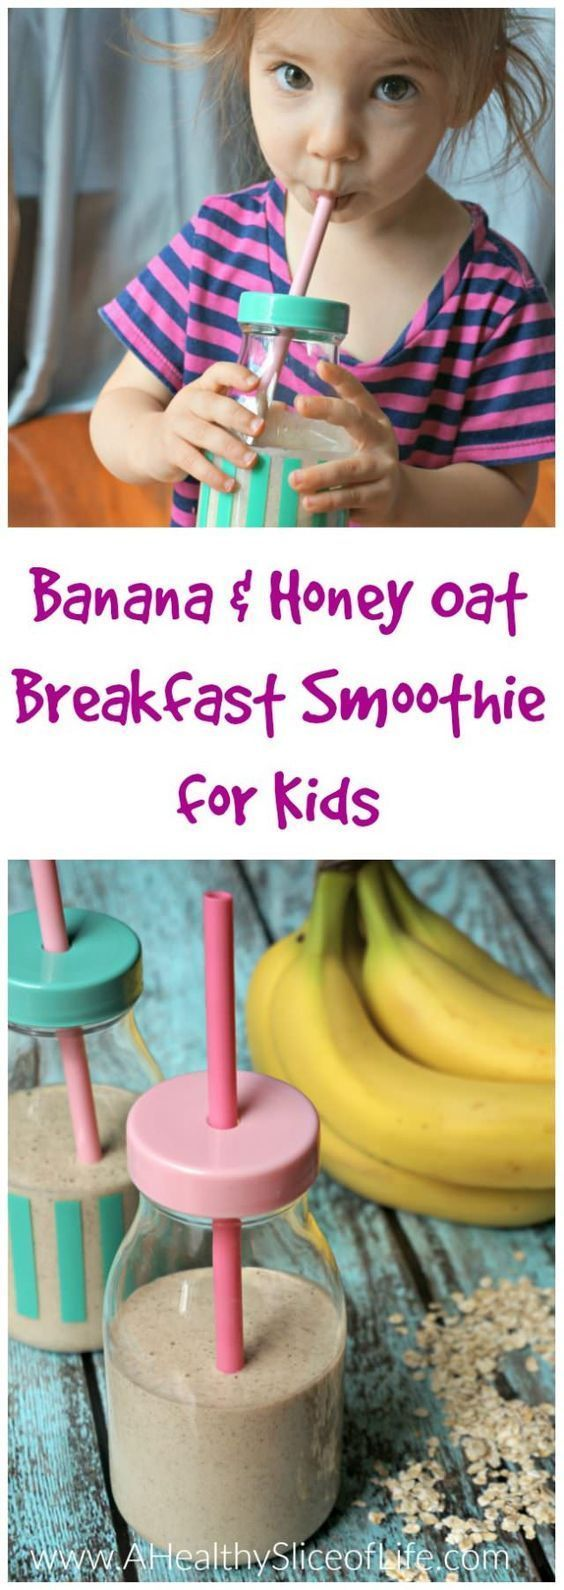 Banana and Honey Oat Breakfast Smoothie recipe. This power-packed oatmeal smoothie delivers all the healthy energy of a bowl of oatmeal in a delicious smoothie form that means faster consumption and less clean up- perfect for kids!